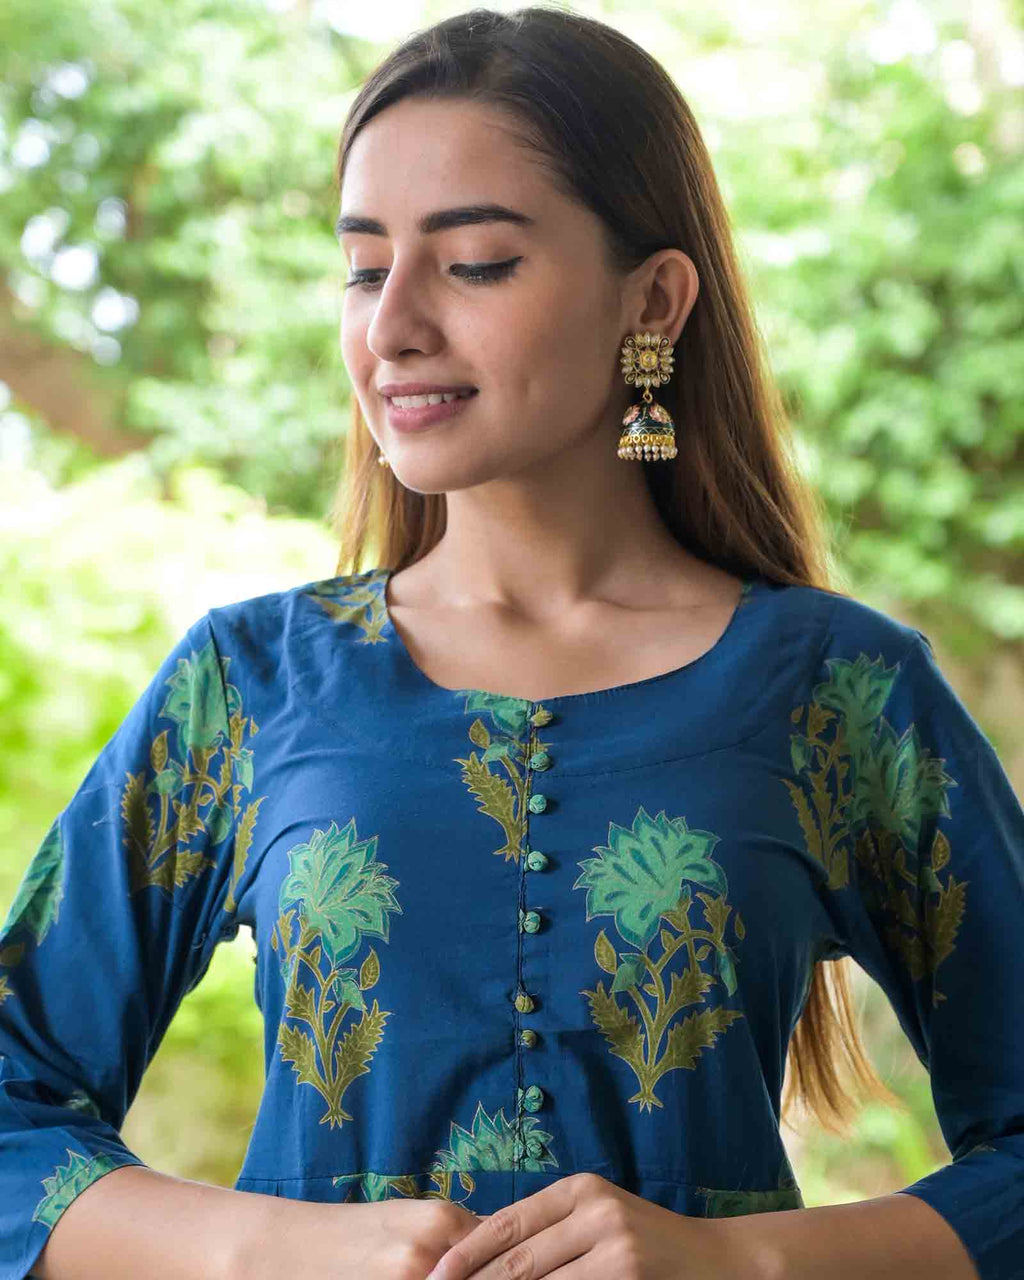 GREEN MEENAKARI FLOWER EARRINGS